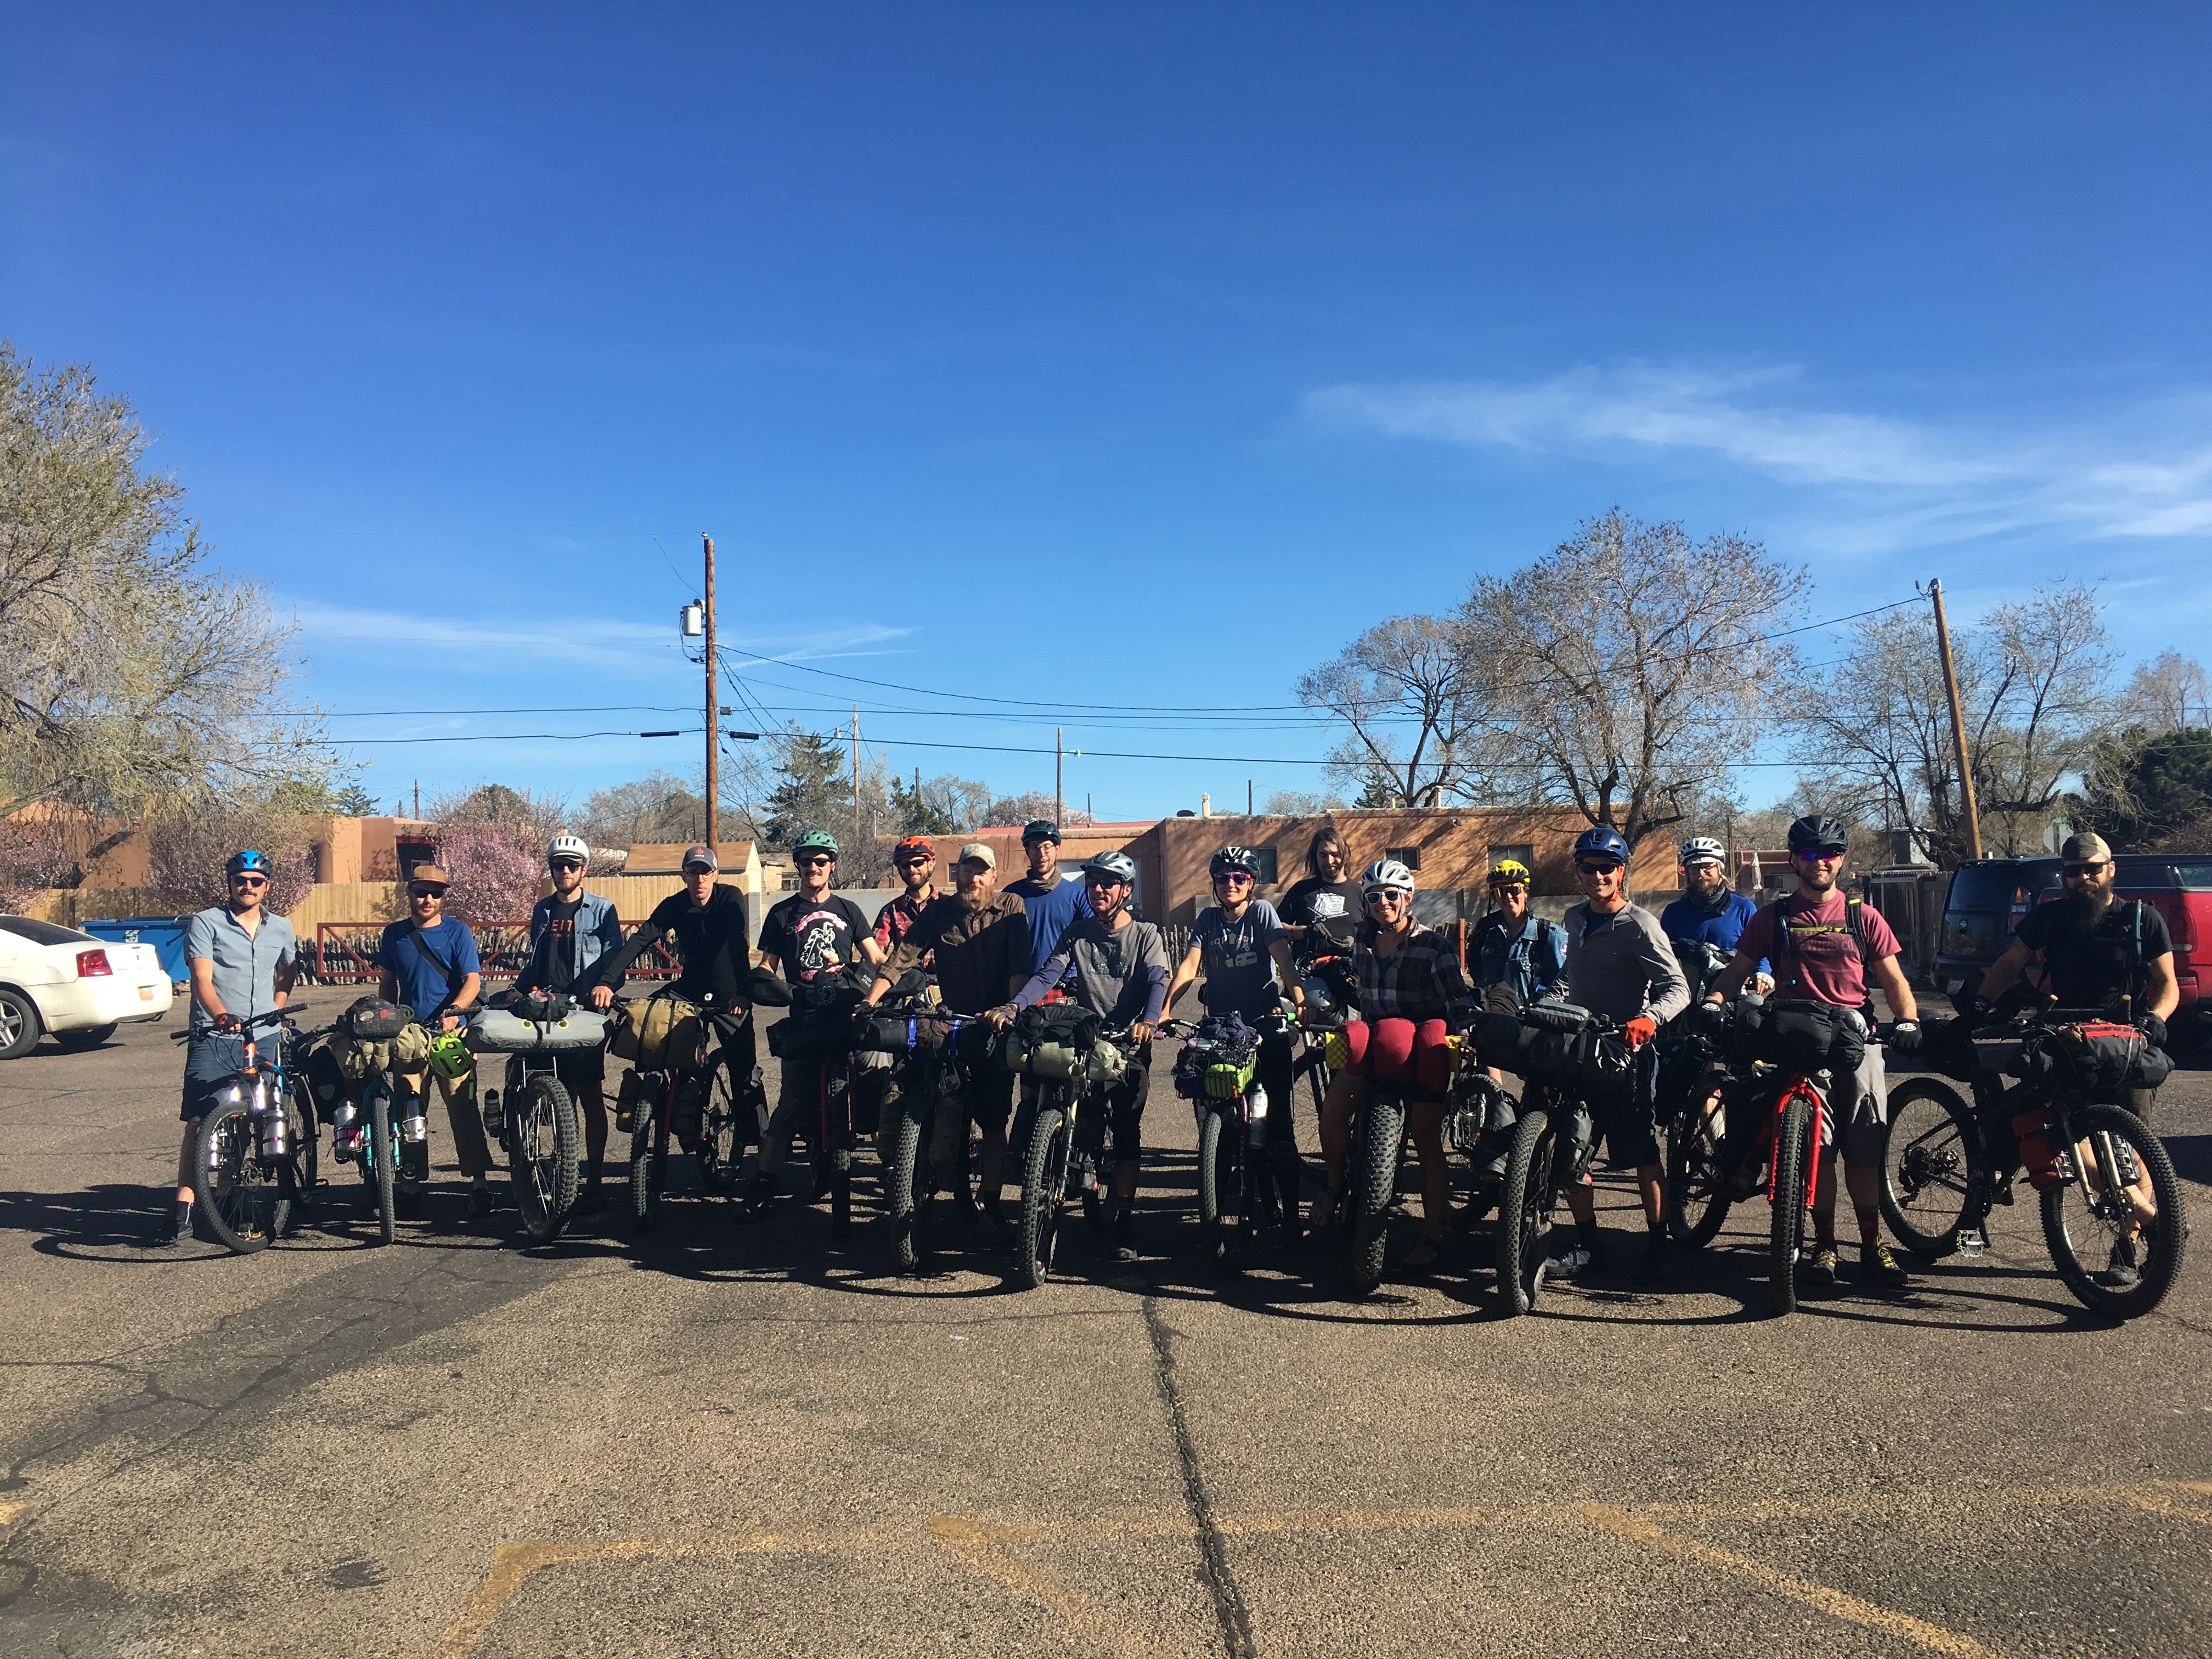 Group of cyclists with their bikes side by side across a parking lot with power lines and blue sky in the backgroundGroup of cyclists with their bikes side by side across a parking lot with power lines and blue sky in the background